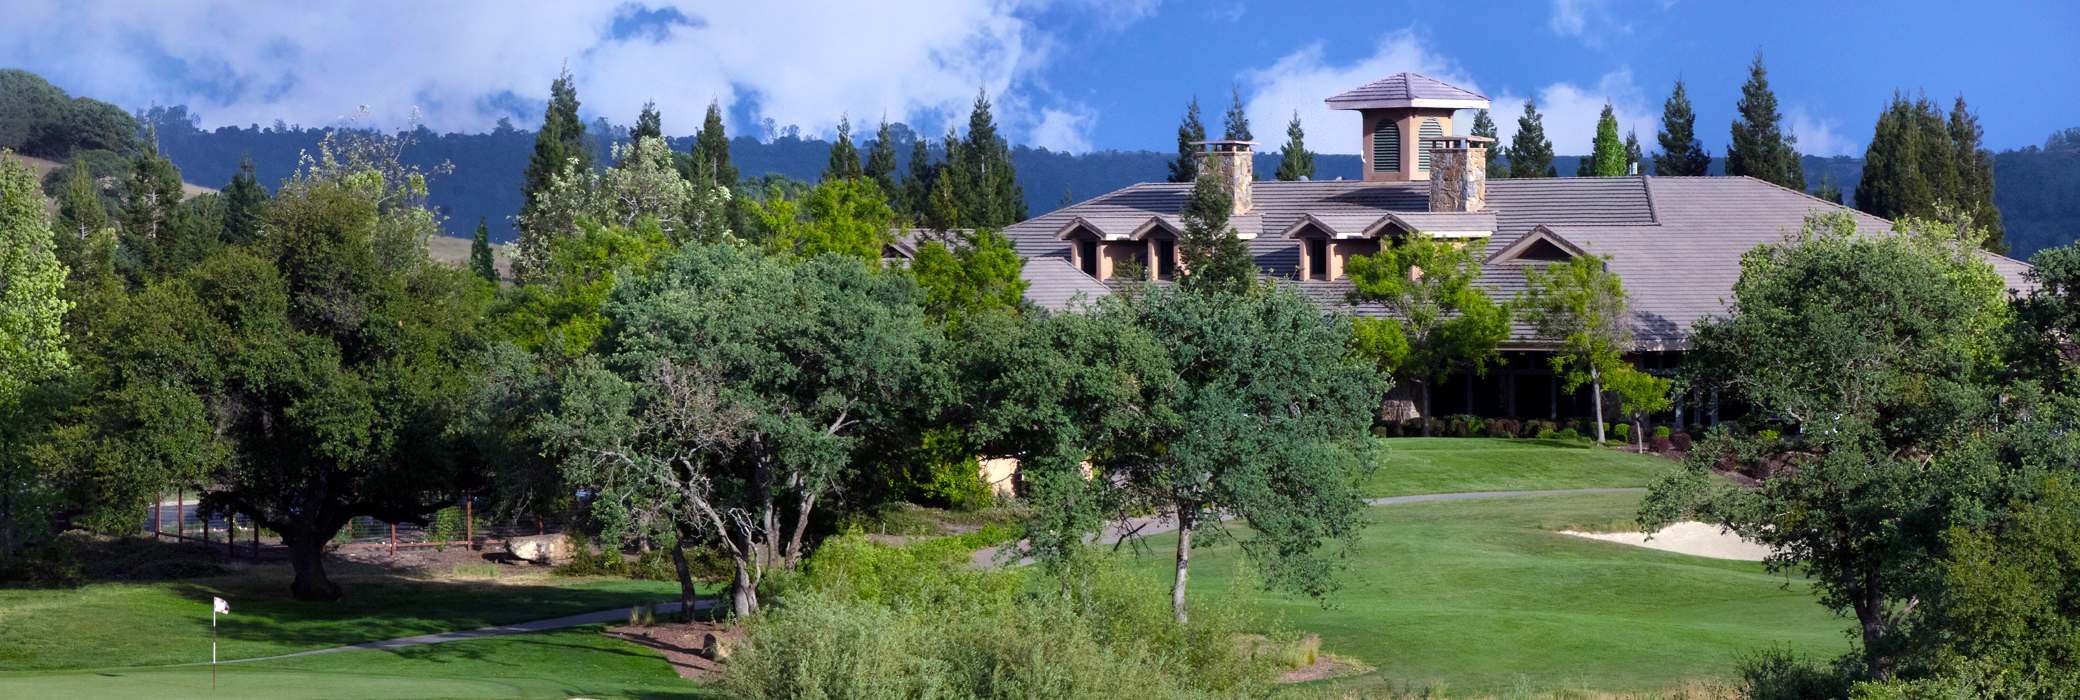 photo-hdr-copper-valley-golf-clubhouse-view